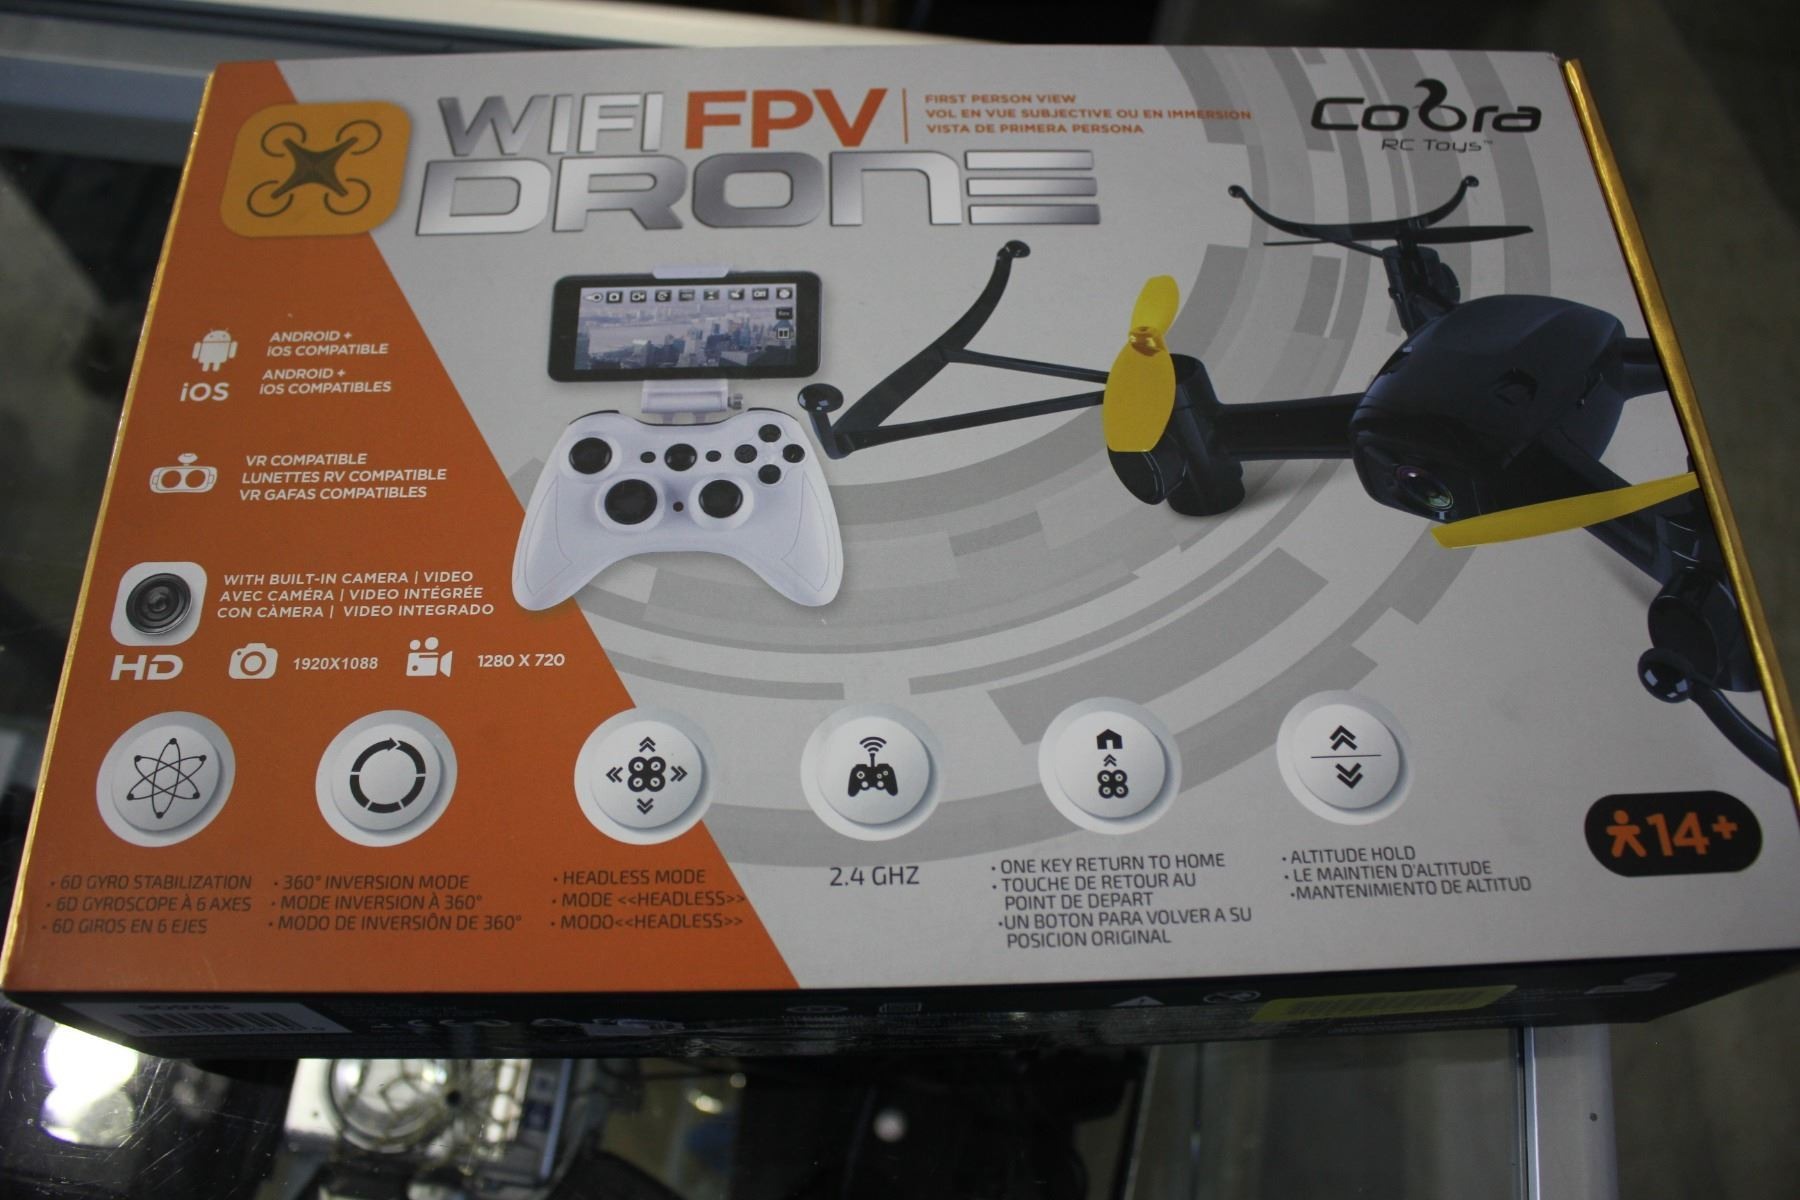 COBRA WIFI FPV DRONE WITH CAMERA, ANDROID AND IOS COMPATIBLE